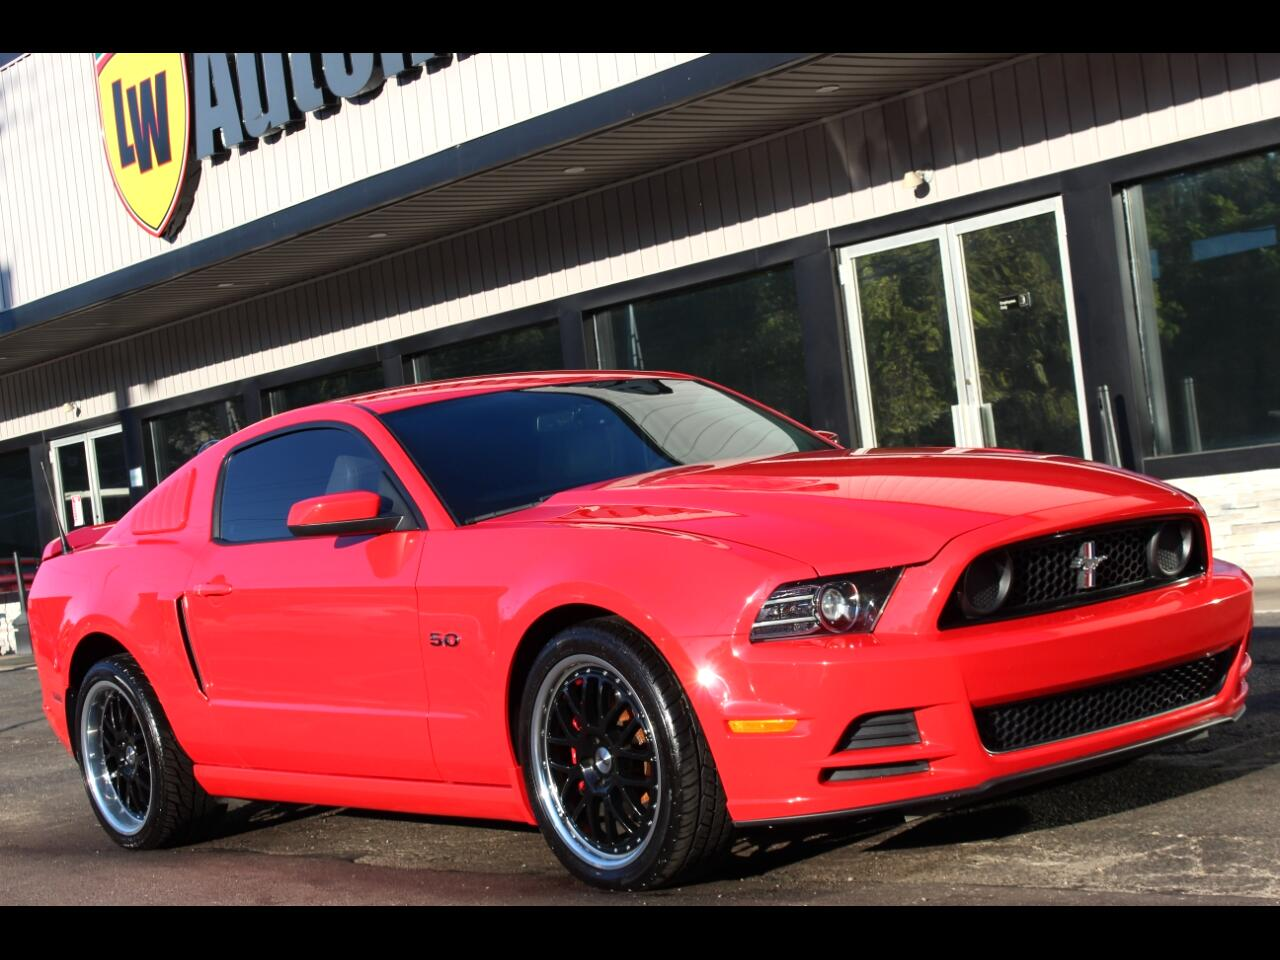 Ford Mustang 2dr Cpe GT Premium 2014